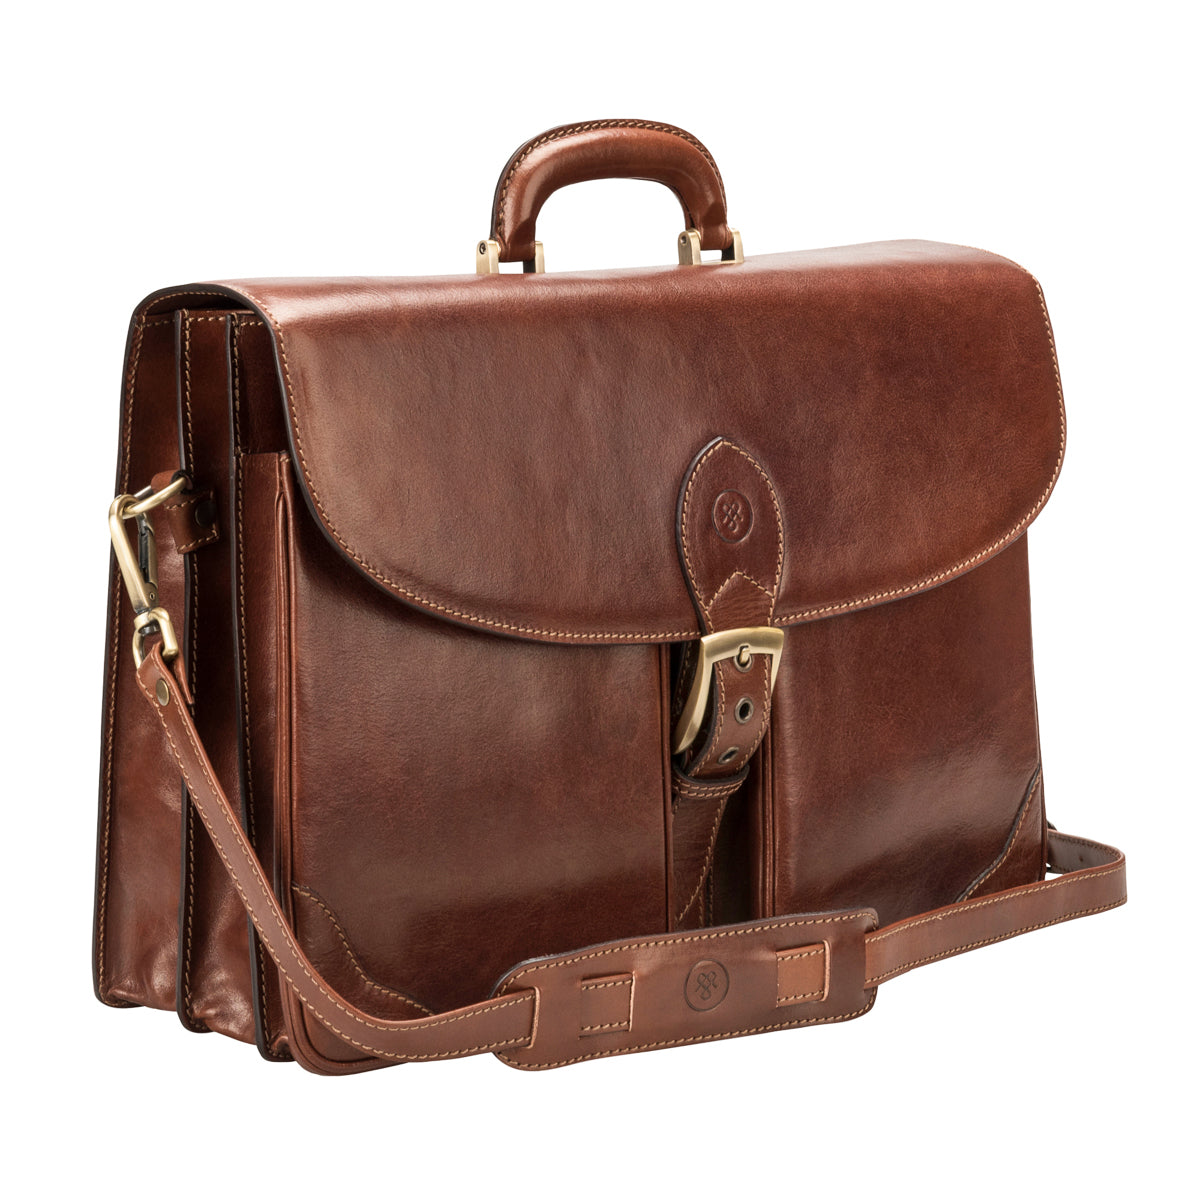 Image 2 of the 'Tomacelli' Handmade Chestnut Veg-Tanned Briefcase